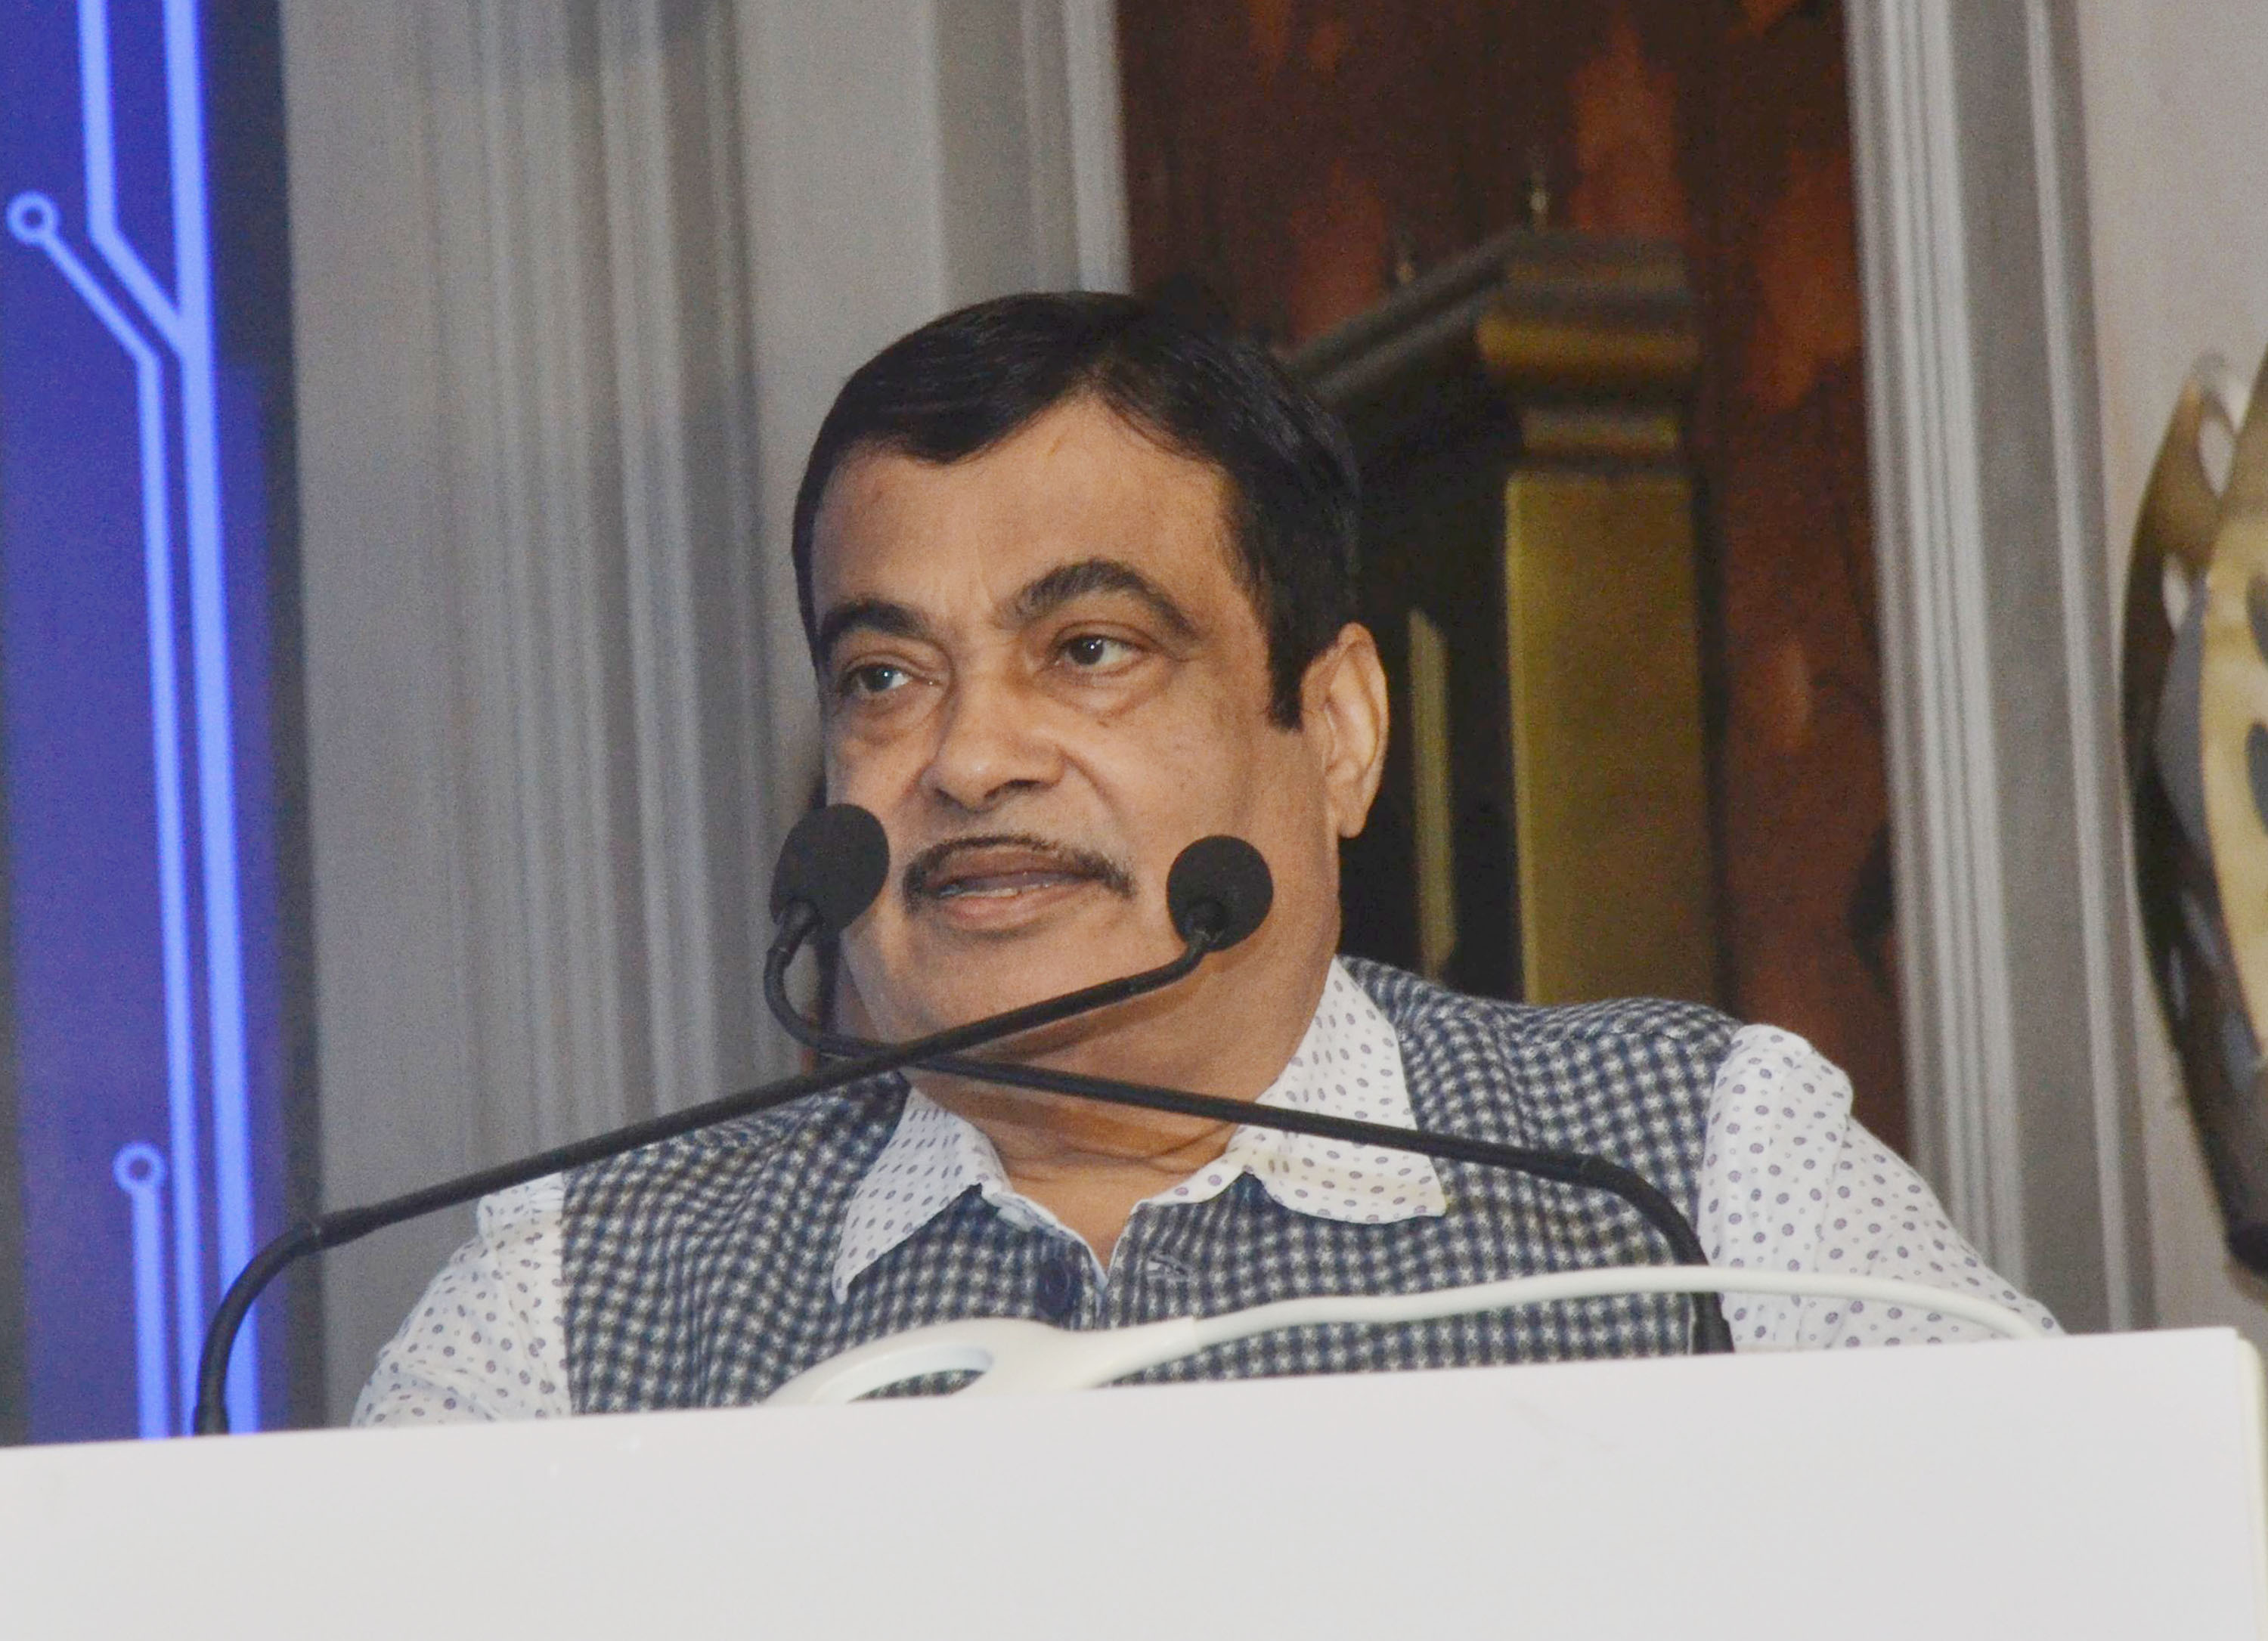 Nitin Gadkari, Union Minister for Road Transport and Highways, Shipping, Micro, Small and Medium Enterprises addressing at the launching the A Quiet Revolution Honda BSVI Two-Wheeler New Premium 'Activa 125, in New Delhi on Wednesday. (UNI)